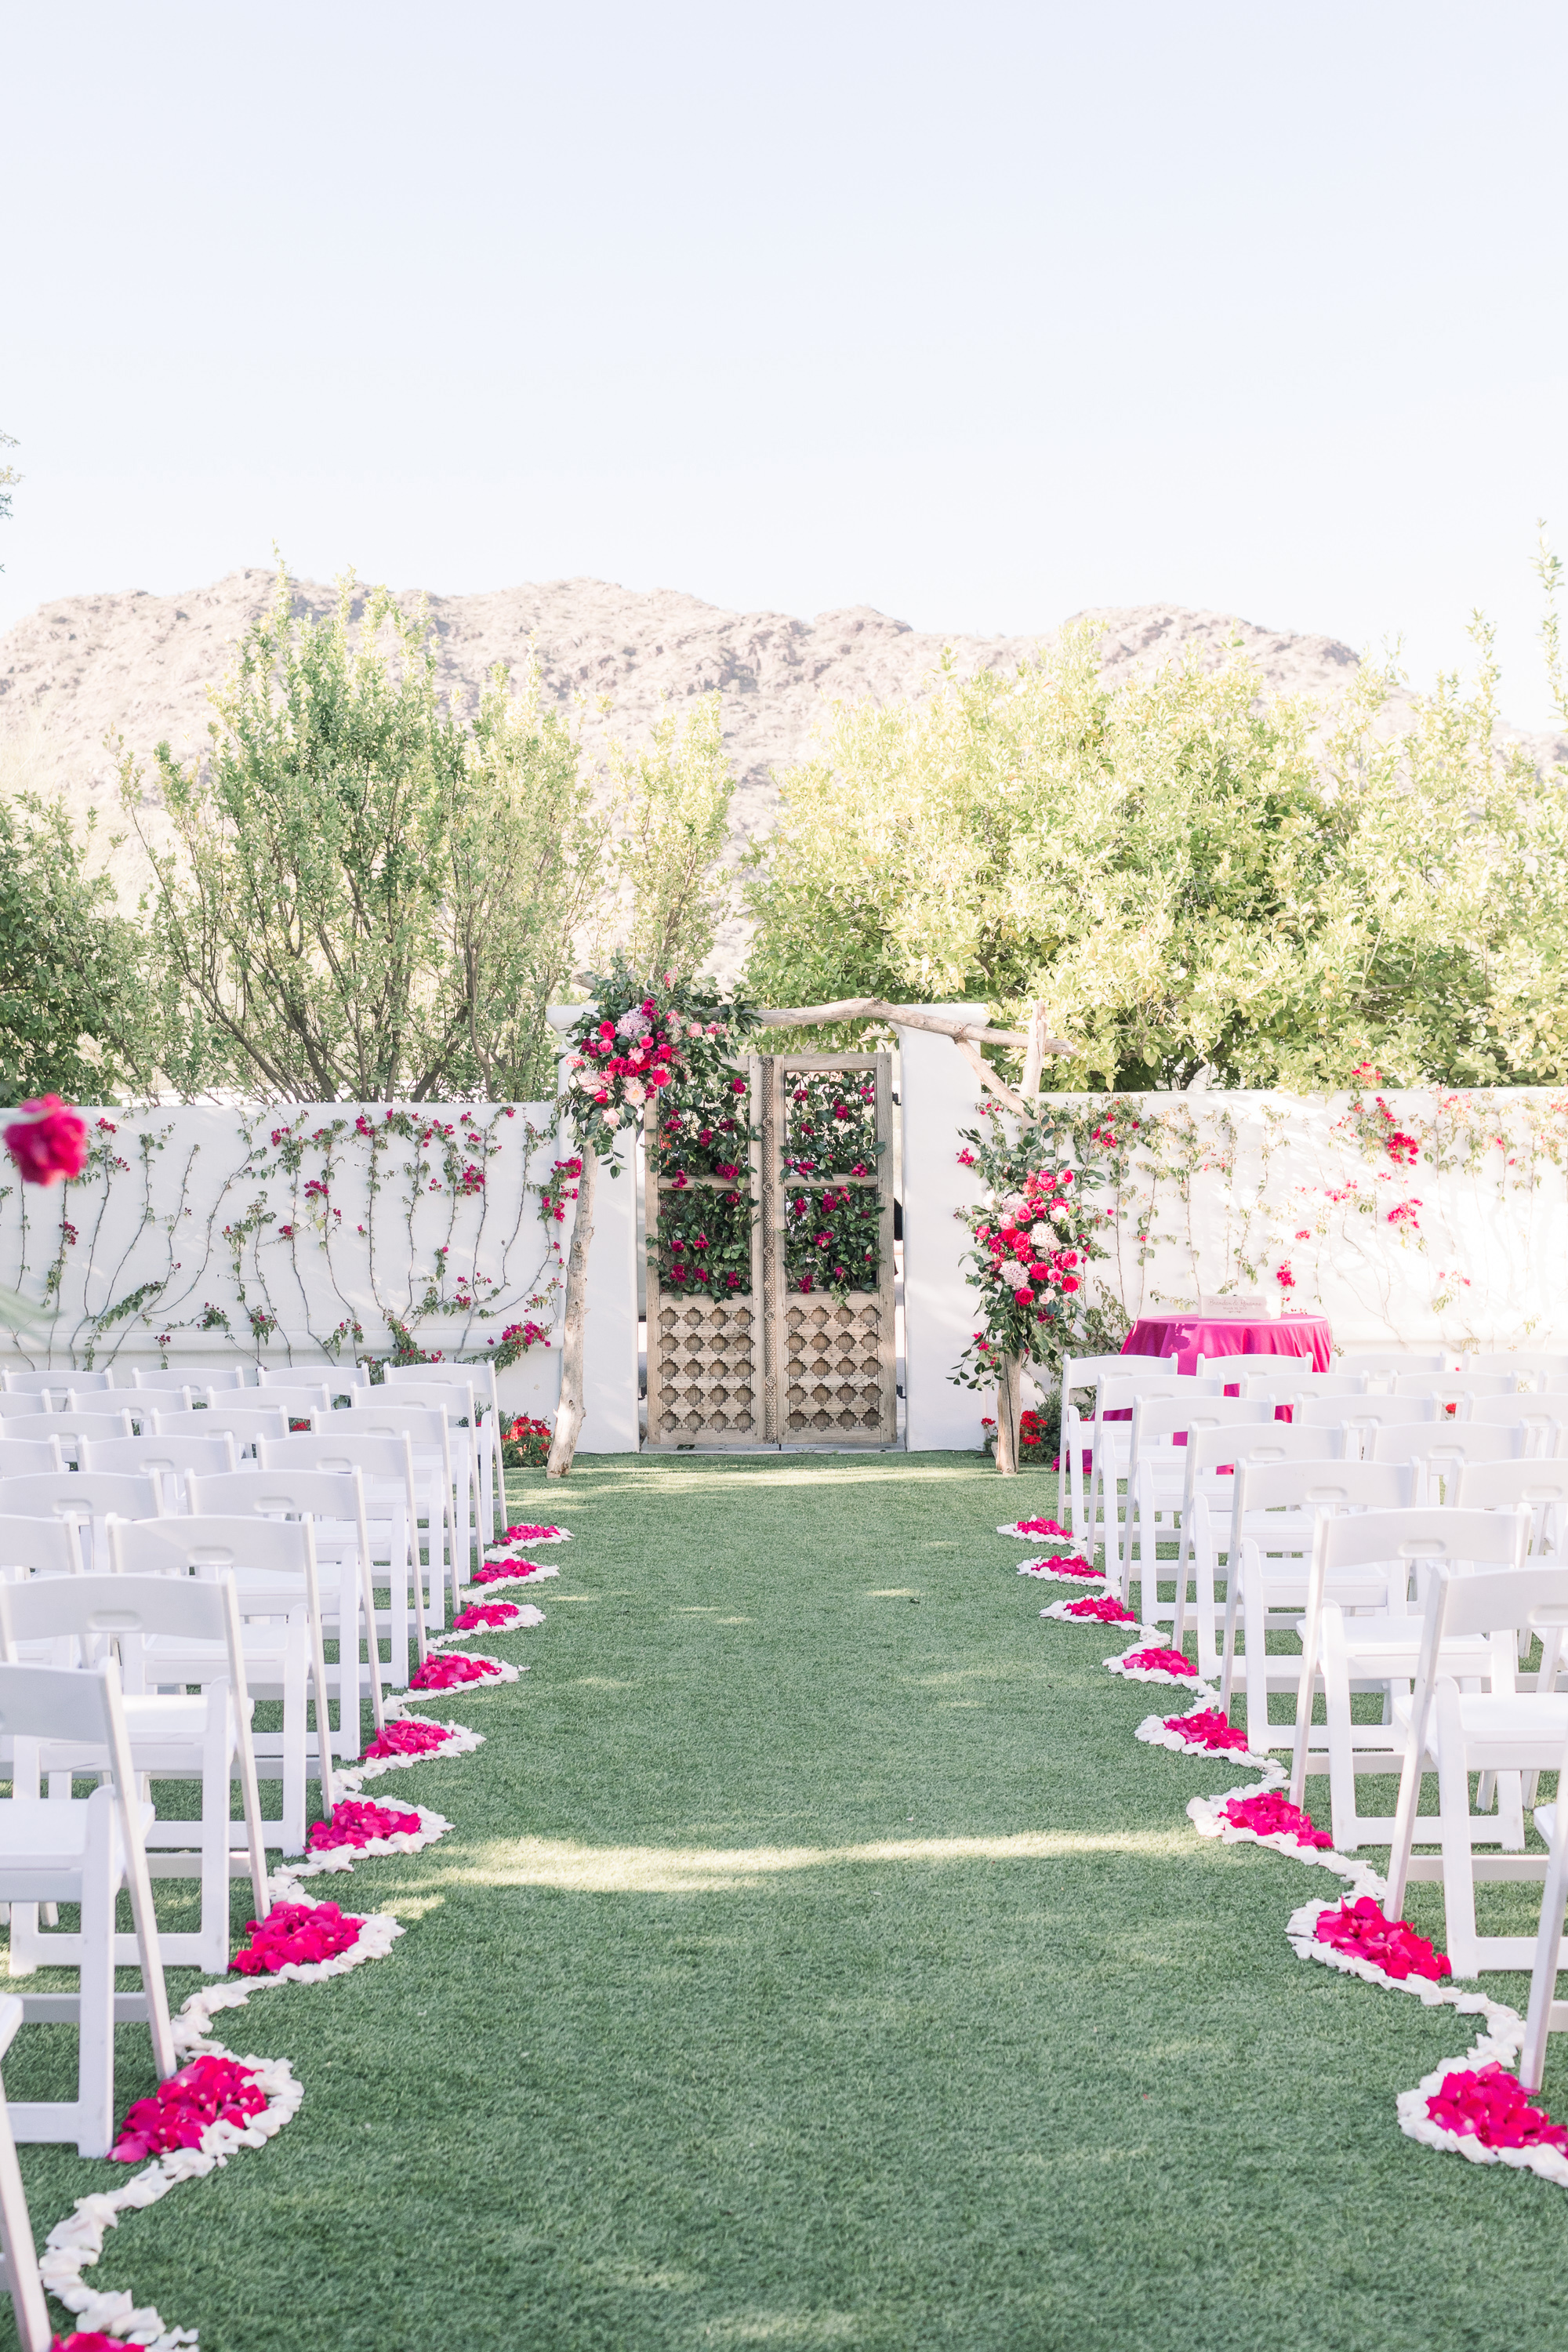 Roxanne and Brandon's El Chorro Wedding - Arizona florist Phoenix scottsdale Mesa chandler Sedona Prescott - Ceremony Decor Inspiration with Blush and Hot Pink Flowers